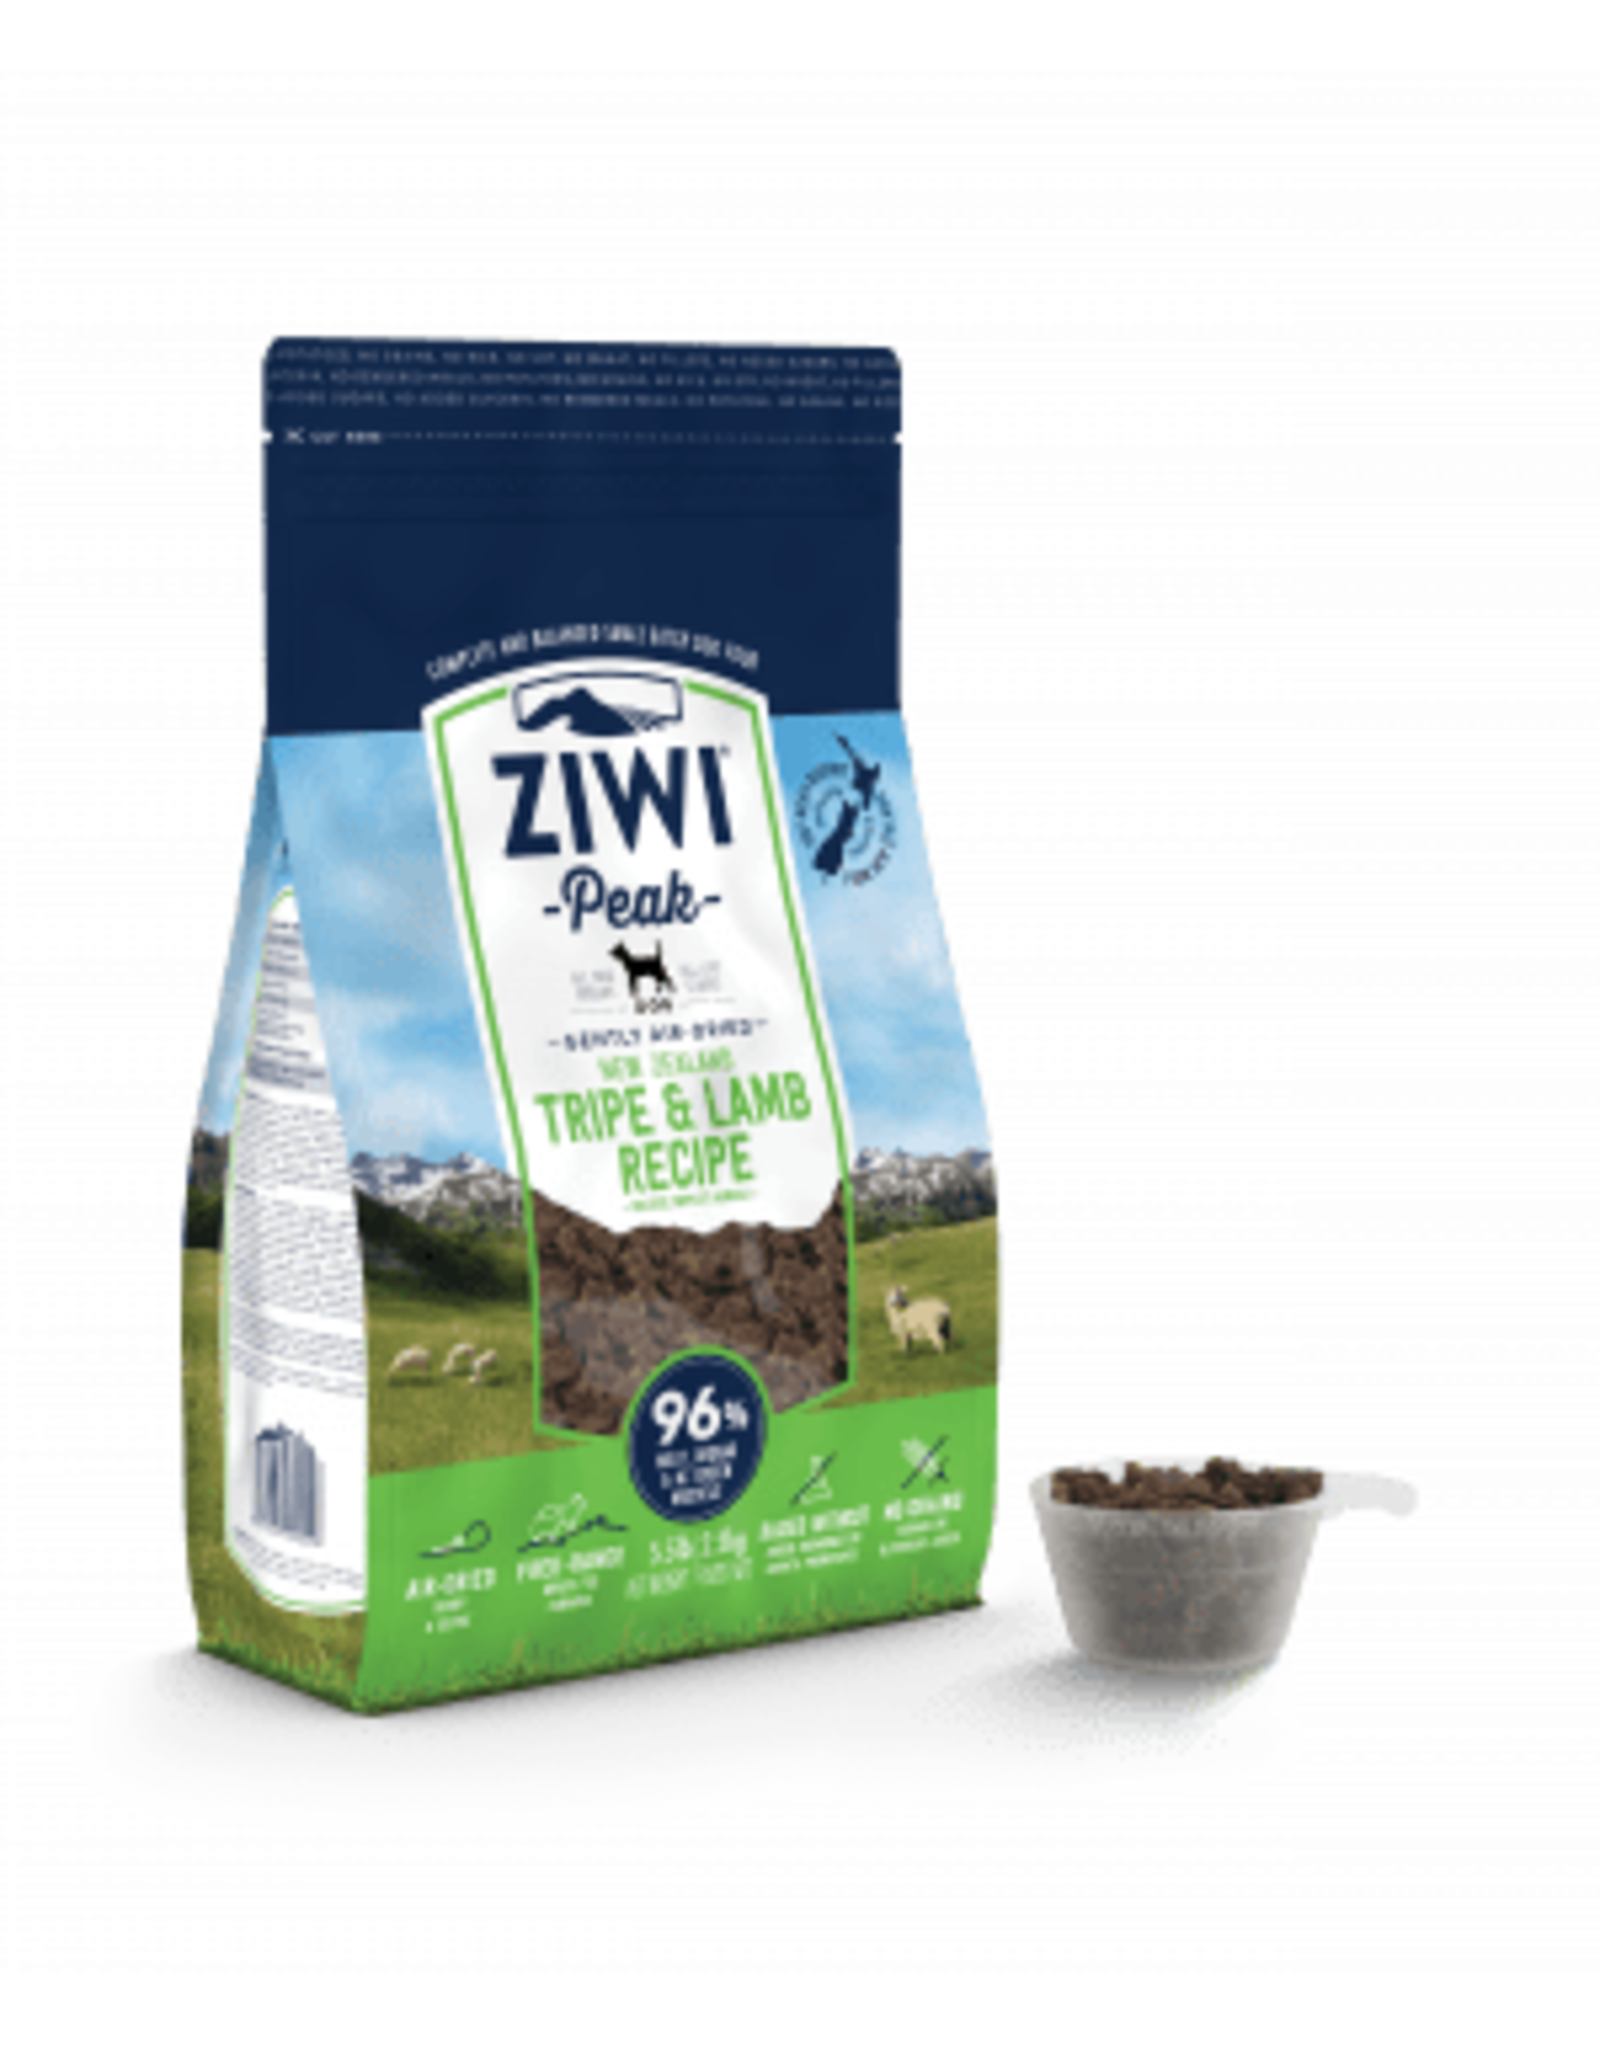 Ziwi Peak Air-Dried Tripe & Lamb Recipe for Dogs 2.2lb